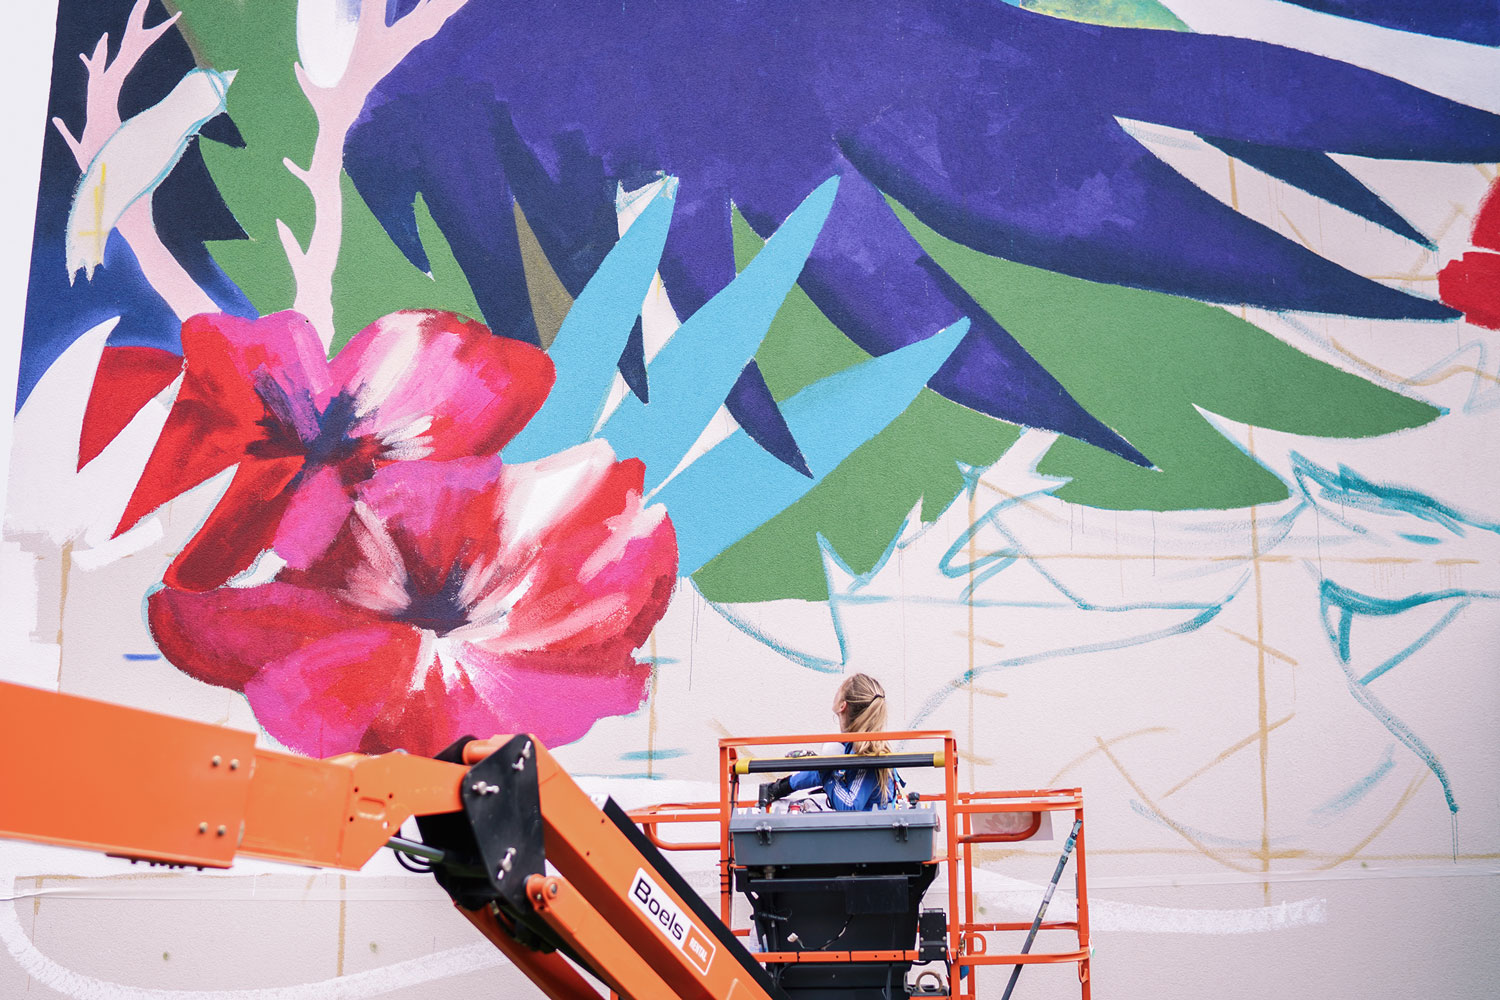 Julieta XLF large mural in Luxembourg Artes & contextos 04 kufas 18